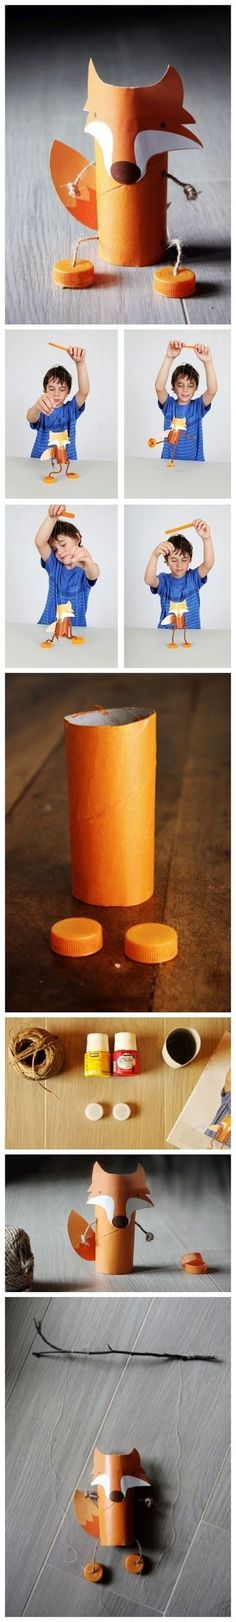 Toilet Paper Roll Crafts - Get creative! These toilet paper roll crafts are a great way to reuse these often forgotten paper products. You can use toilet paper rolls for anything! creative DIY toilet paper roll crafts are fun and easy to make. Projects For Kids, Diy For Kids, Crafts For Kids, Arts And Crafts, Summer Crafts, Toilet Paper Roll Crafts, Paper Crafts, Toilet Paper Rolls, Diy Paper